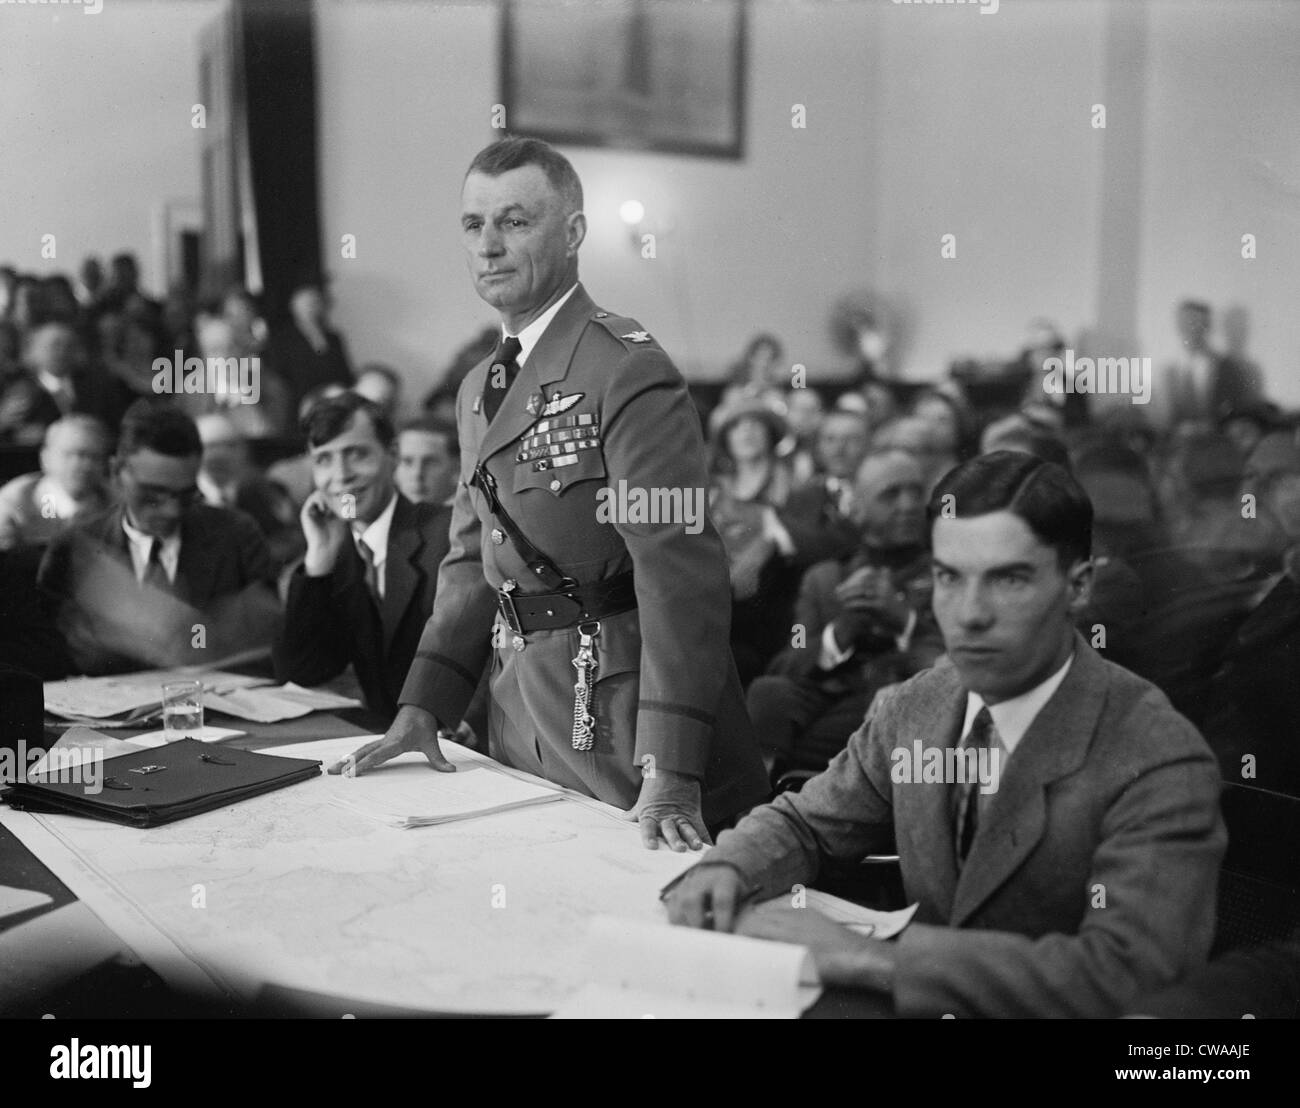 Colonel Billy Mitchell during his September 1925 was court marshal for 'insubordination,' specifically for - Stock Image